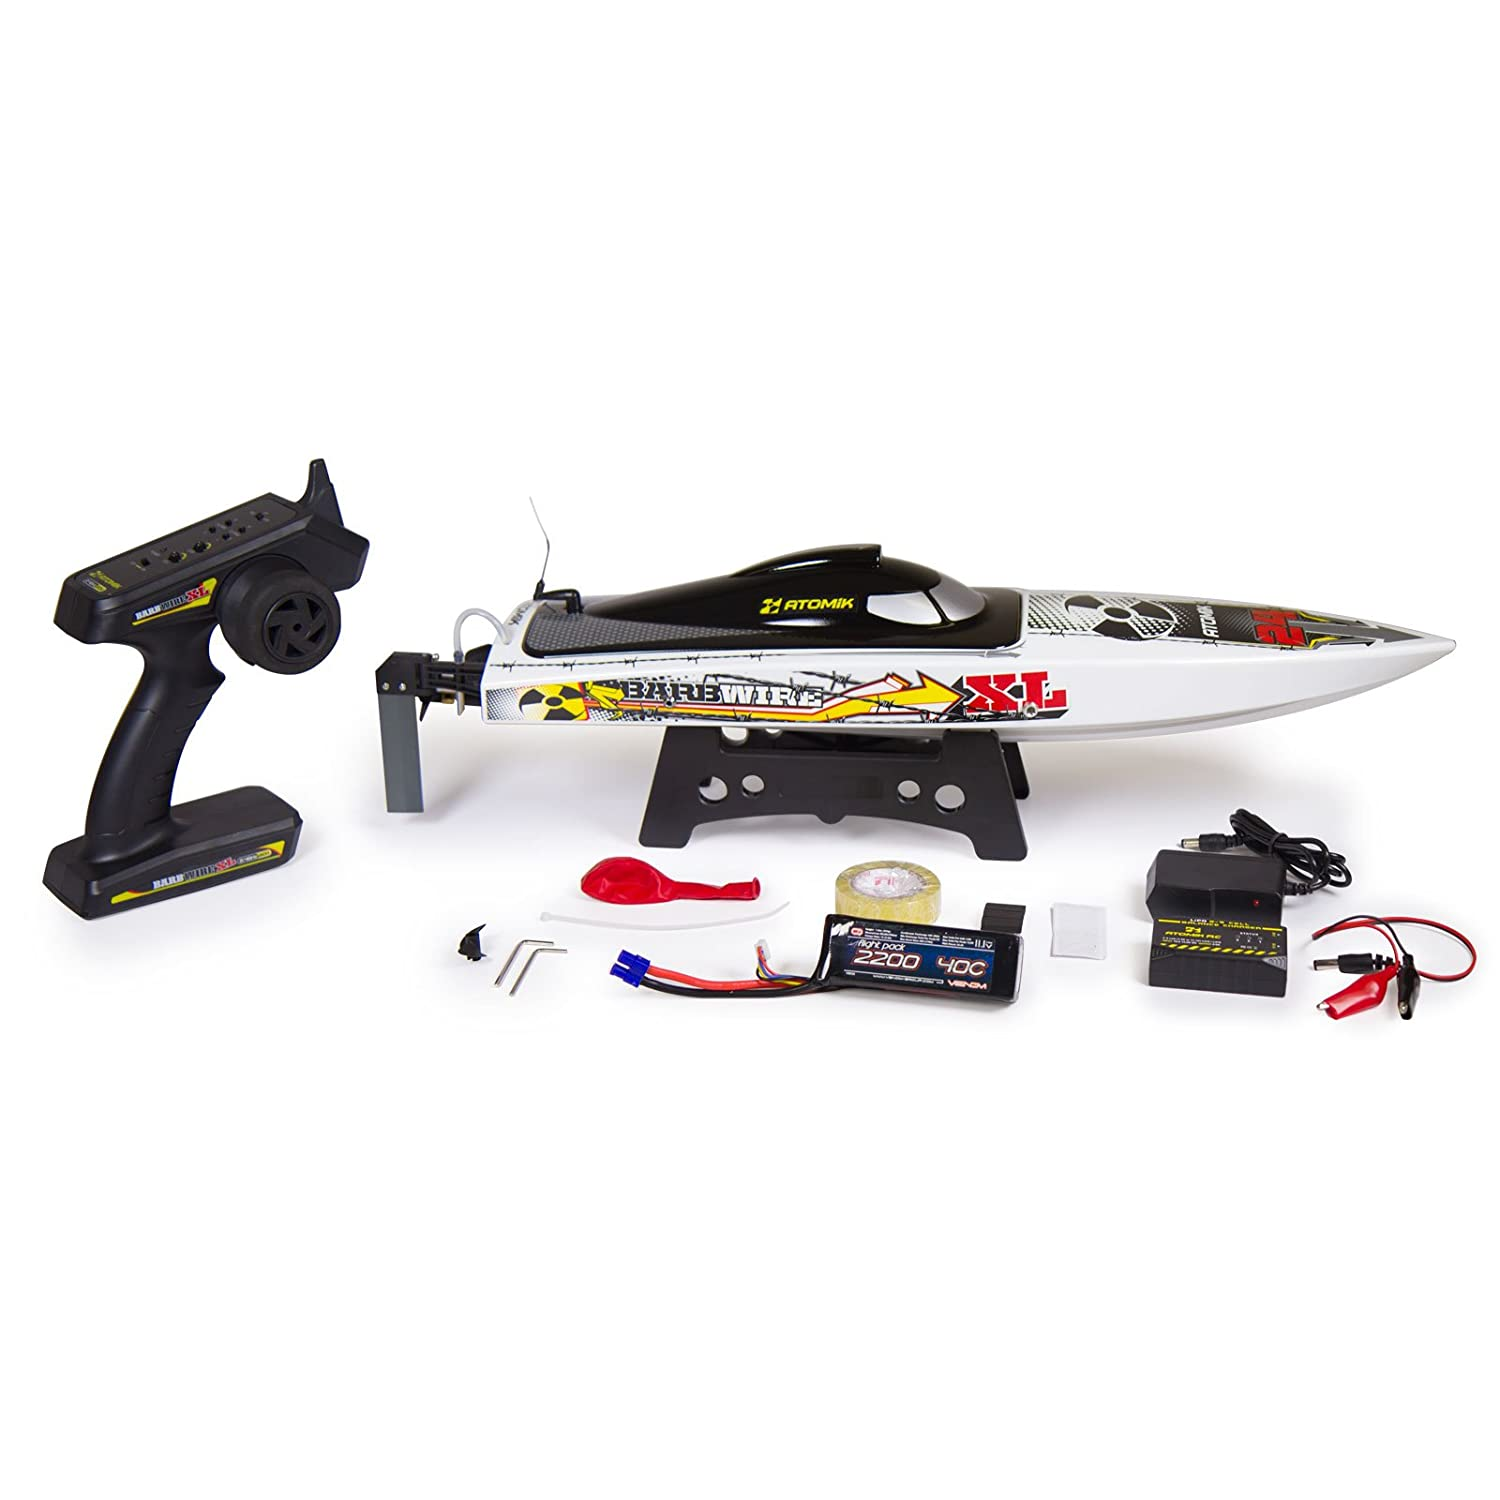 "Atomik Barbwire XL 24"" RTR Brushless RC Race Boat - Self Righting V Hull Design"